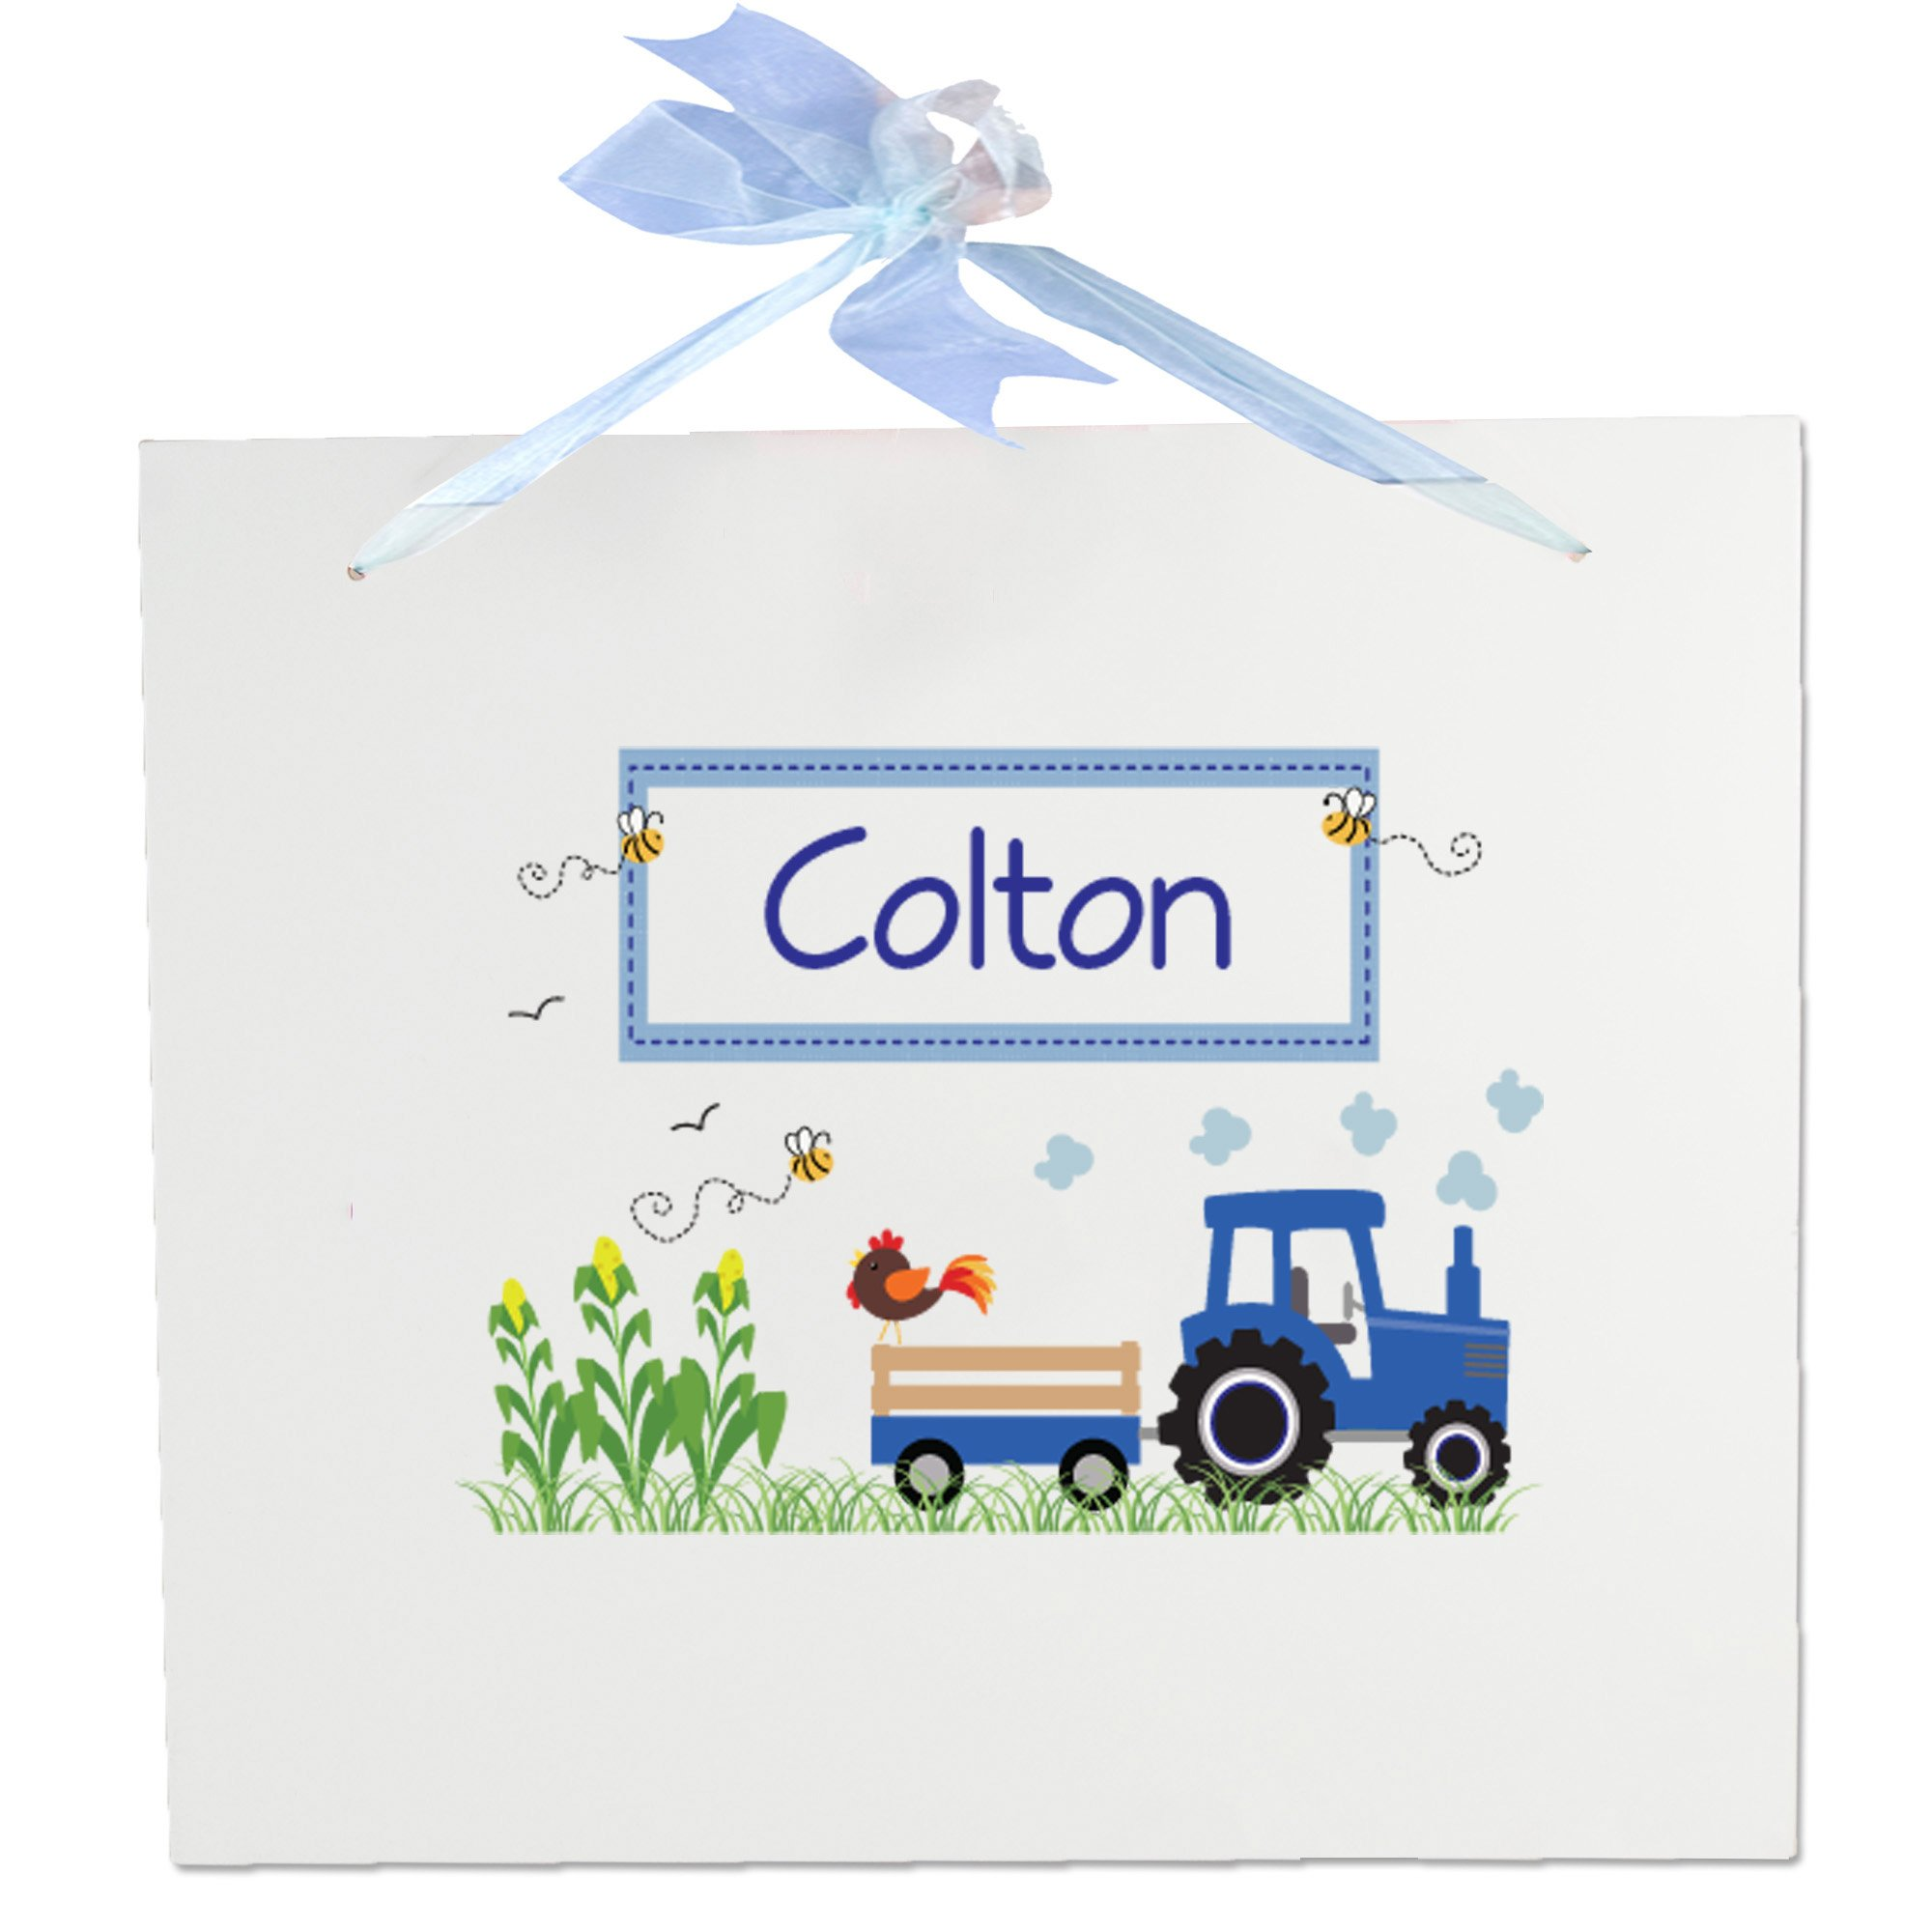 Personalized Nursery Wall Sign with Blue Tractor Design